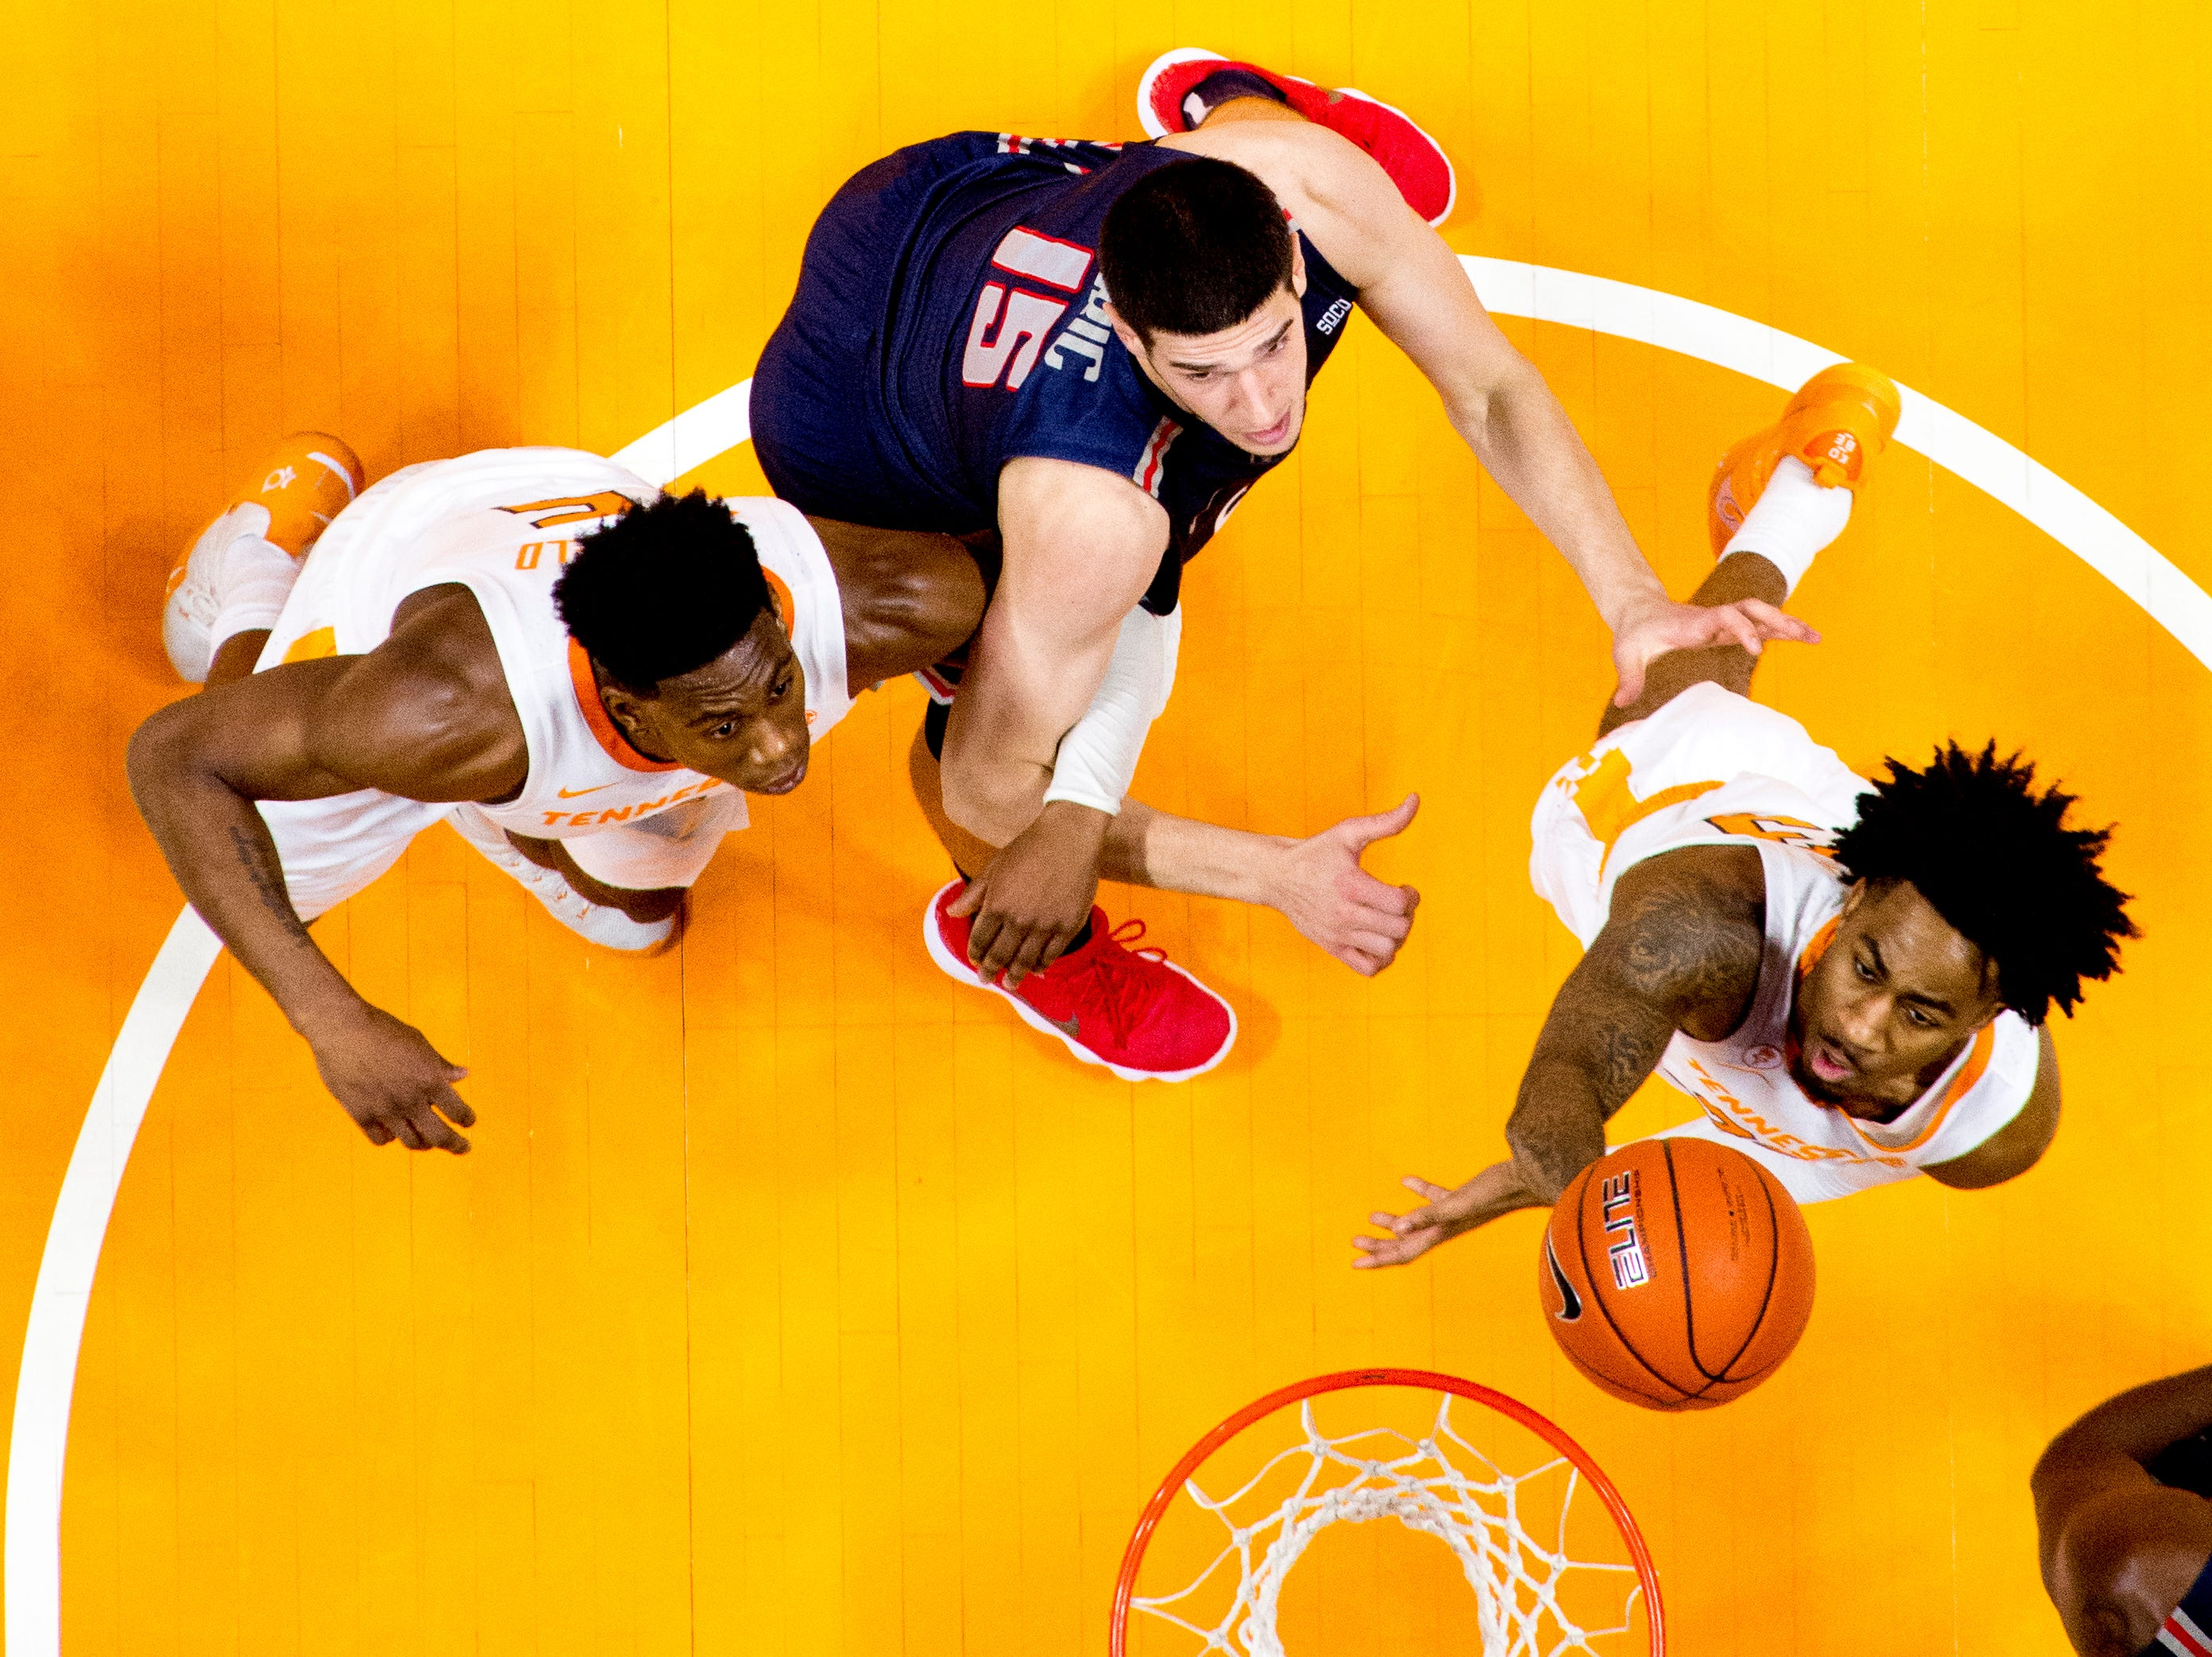 Tennessee guard Jordan Bowden (23) shoots the ball as Samford forward Stefan Lakic (15) defends during a game between Tennessee and Samford at Thompson-Boling Arena in Knoxville, Tennessee on Wednesday, December 19, 2018.